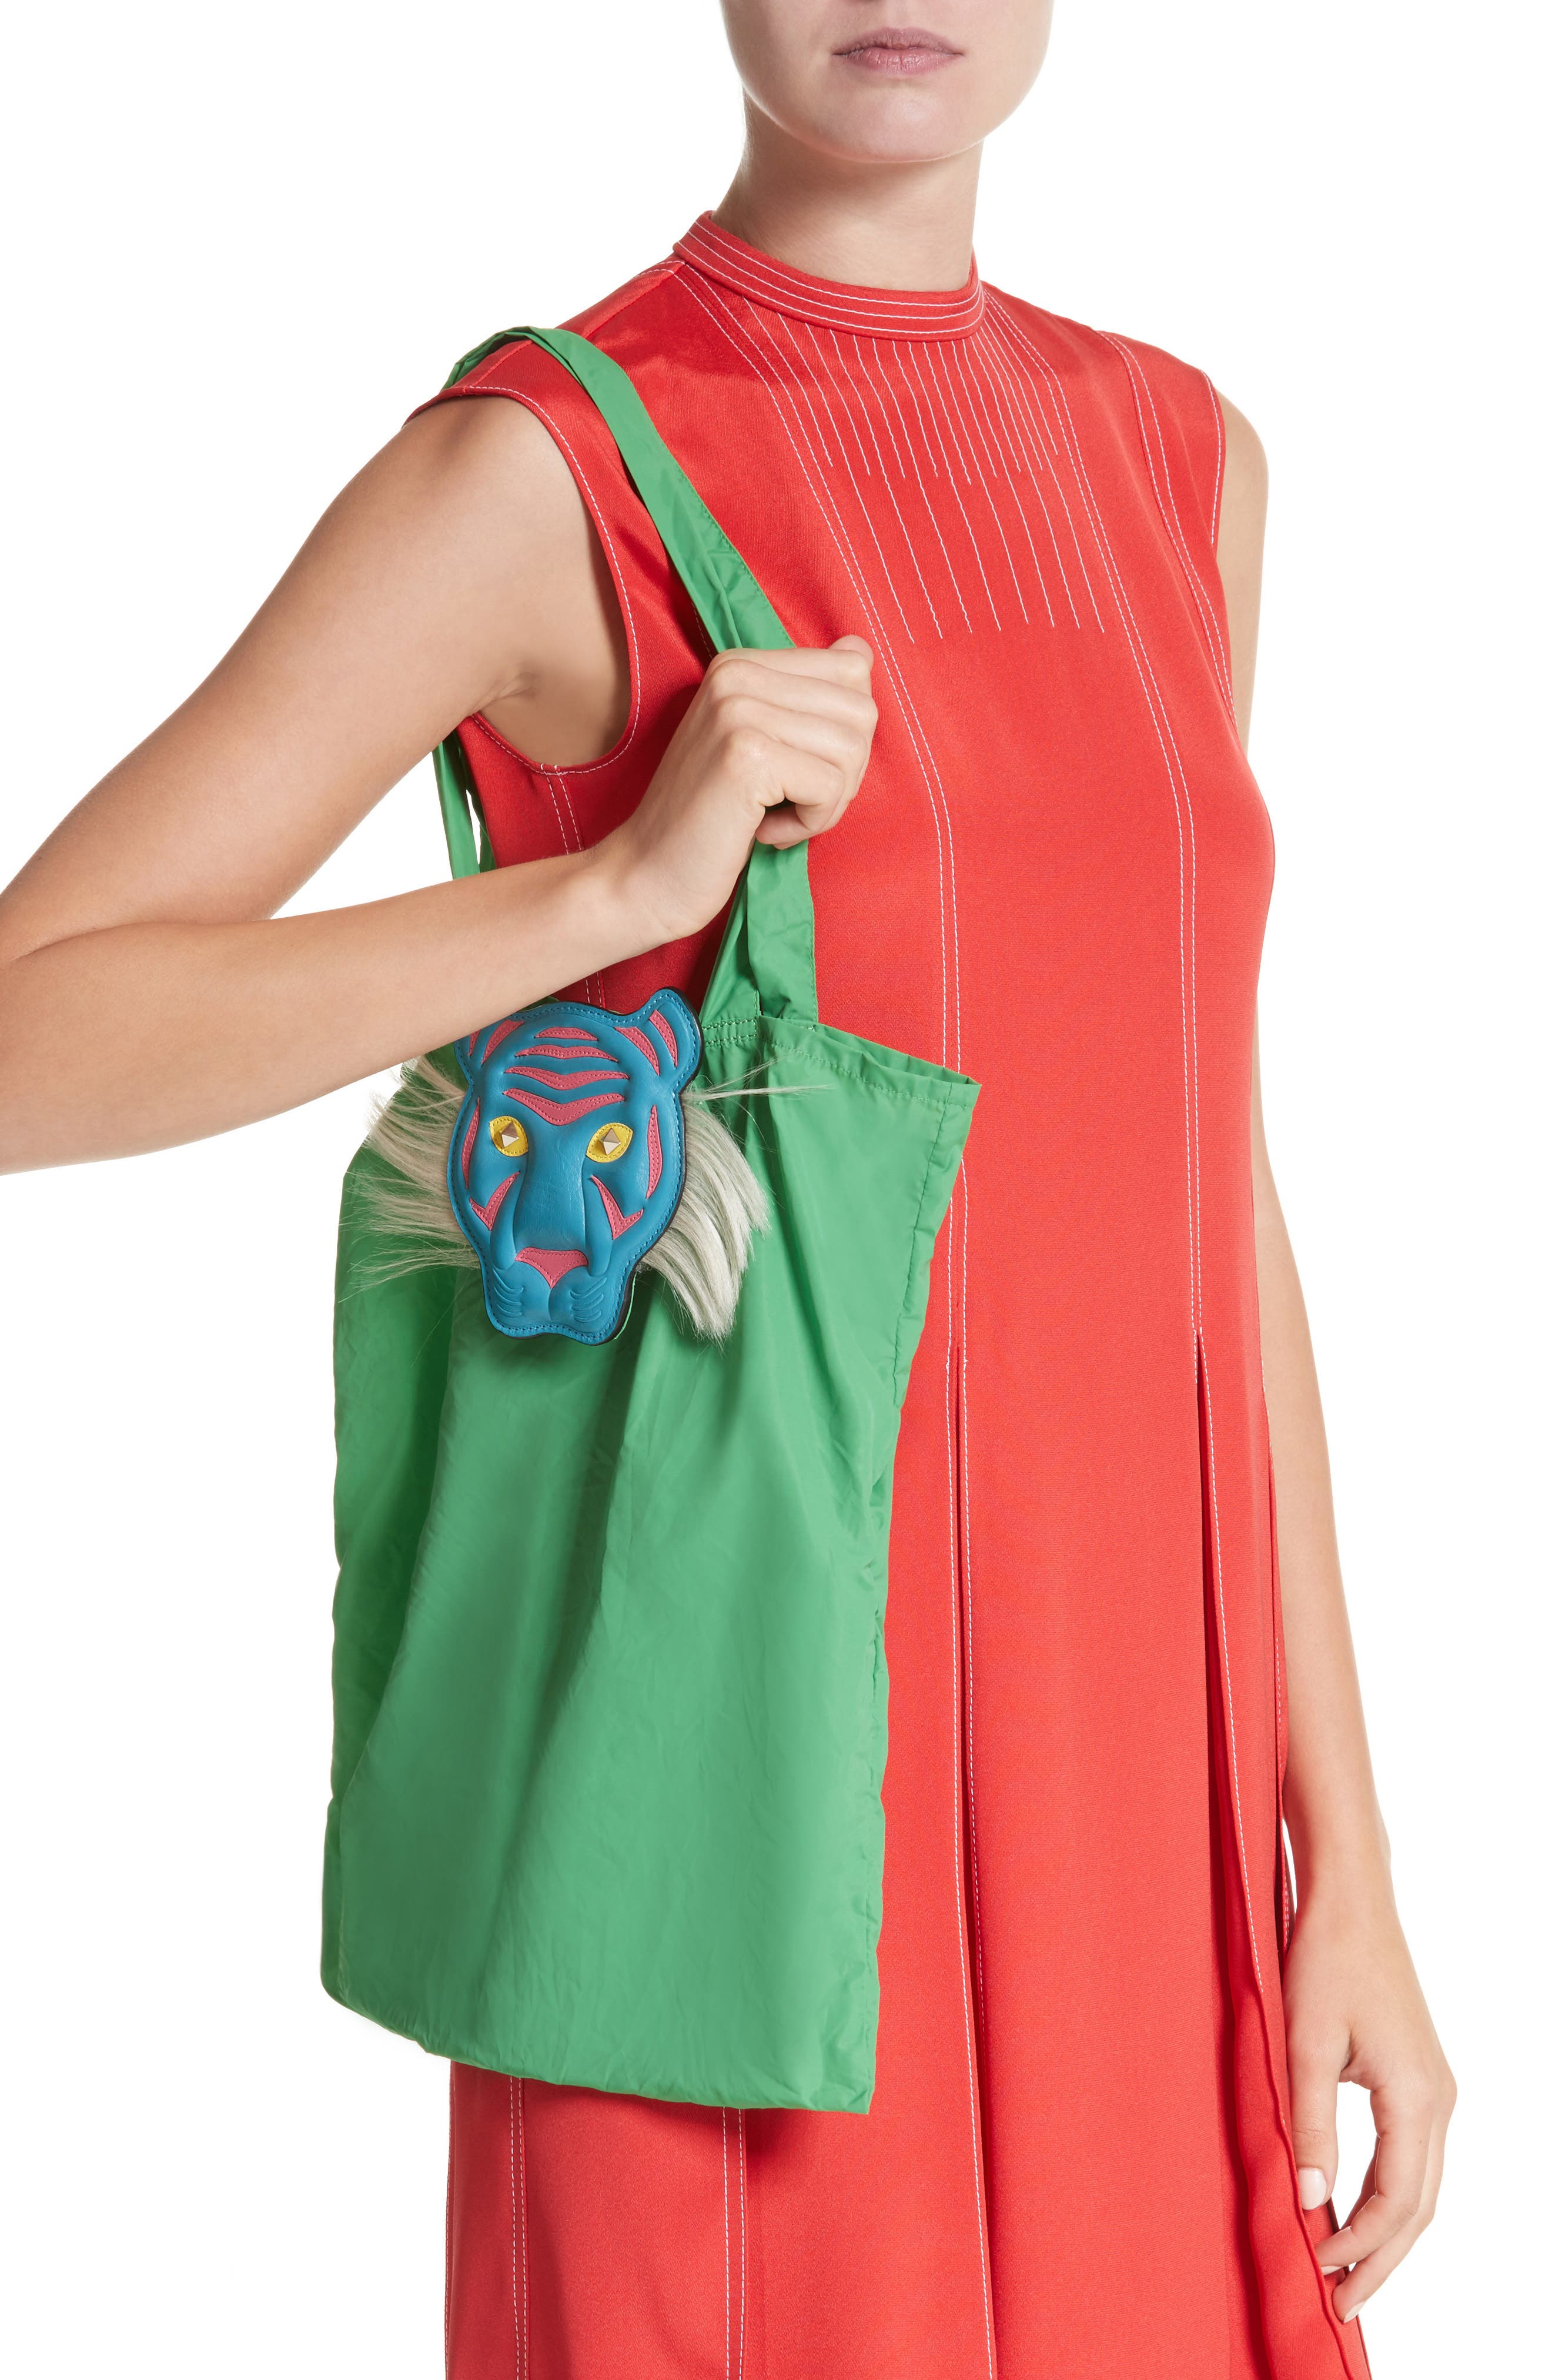 Nylon Tote with Genuine Goat Fur & Leather Bag Charm,                             Alternate thumbnail 2, color,                             Green Multi